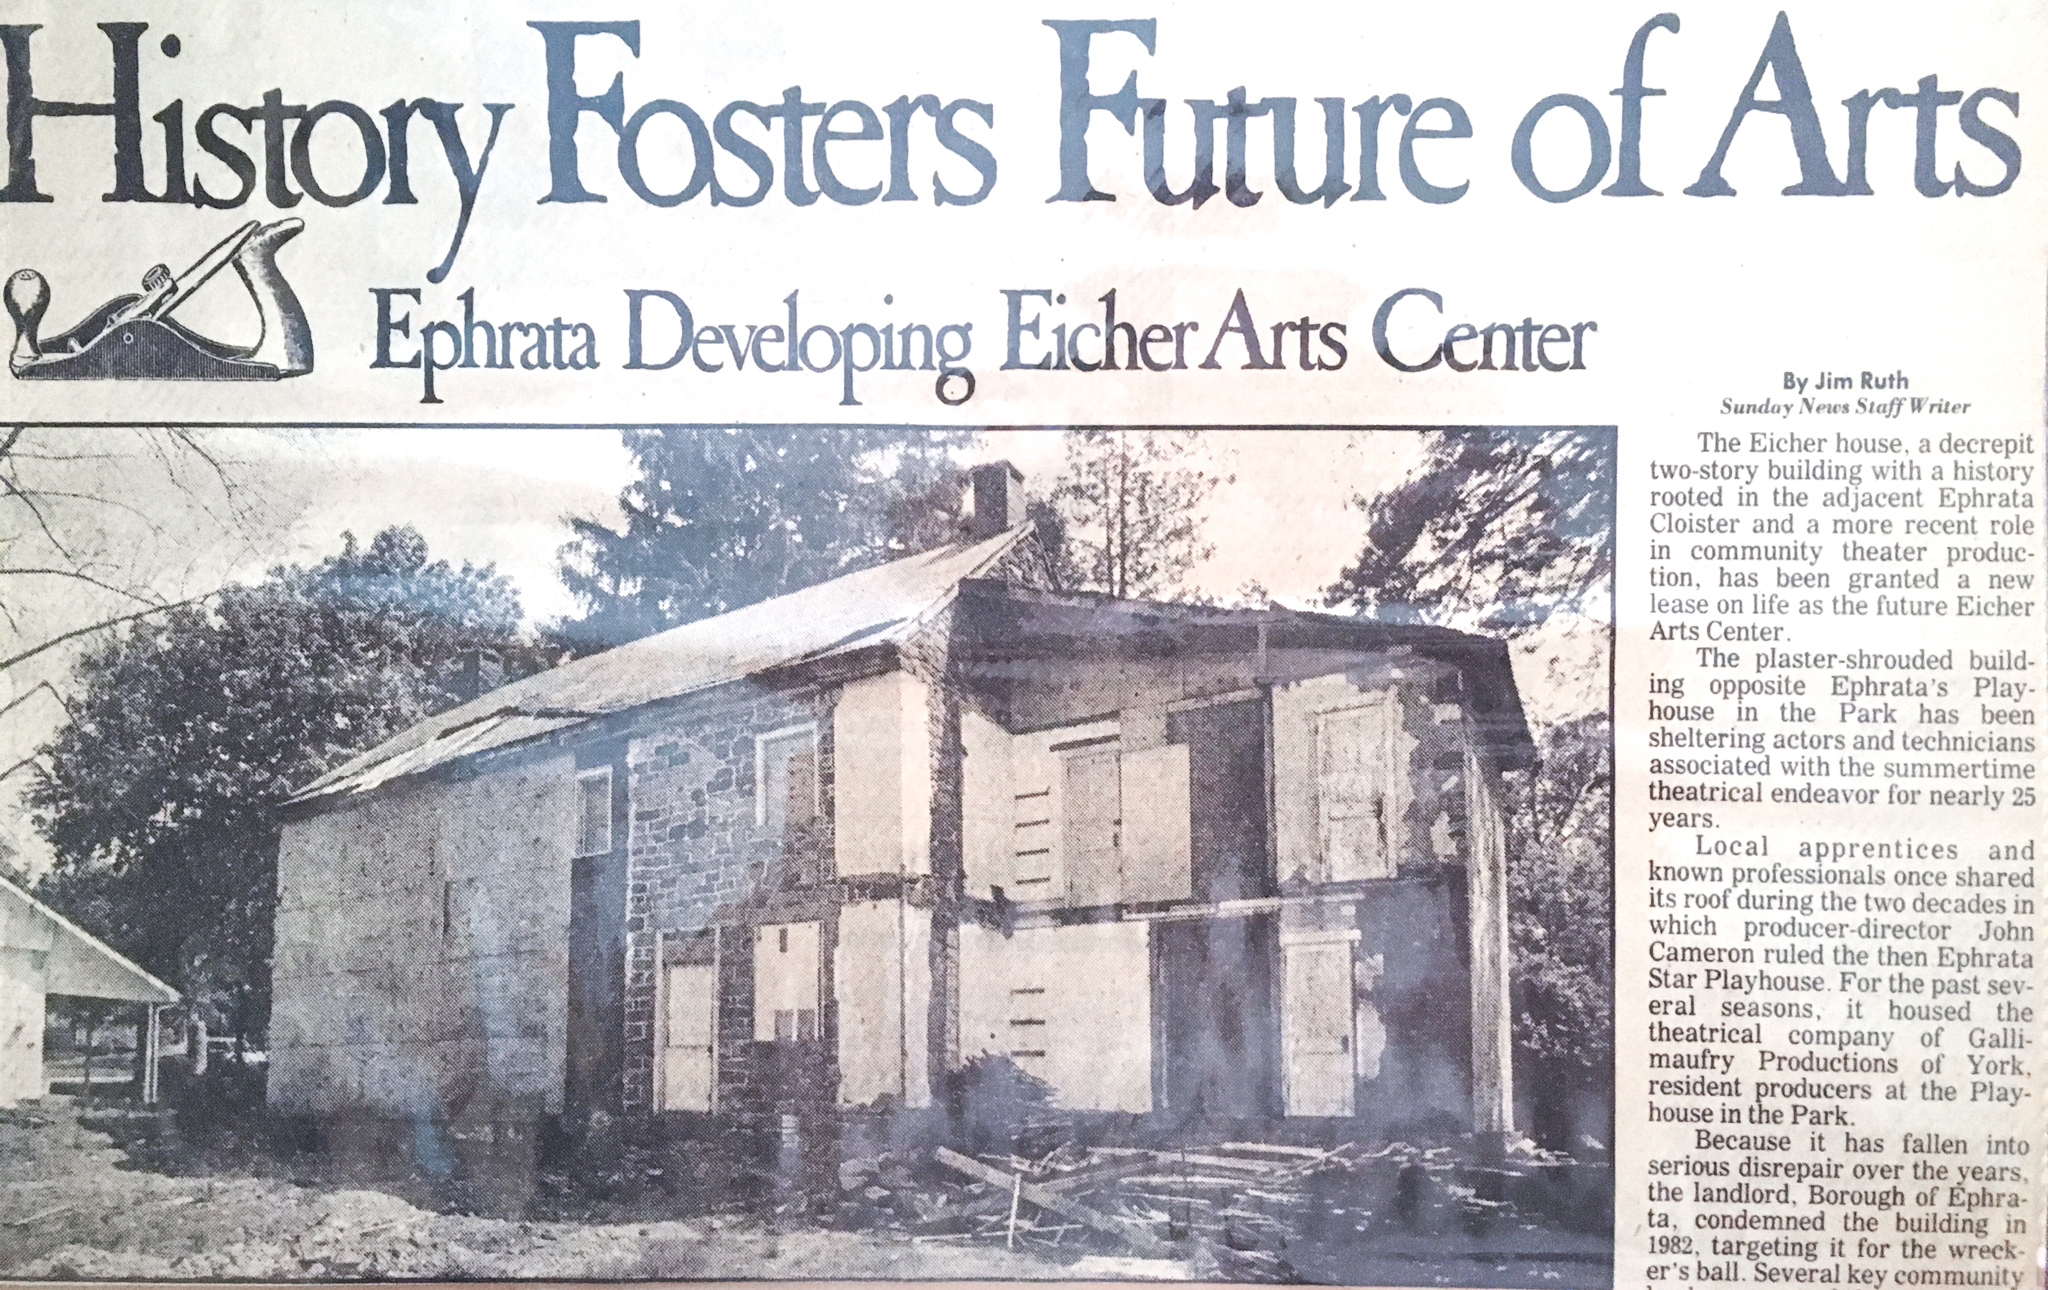 Restoration of the Eicher Cottage & Eicher Sisters' Cabins was completed in 1985.